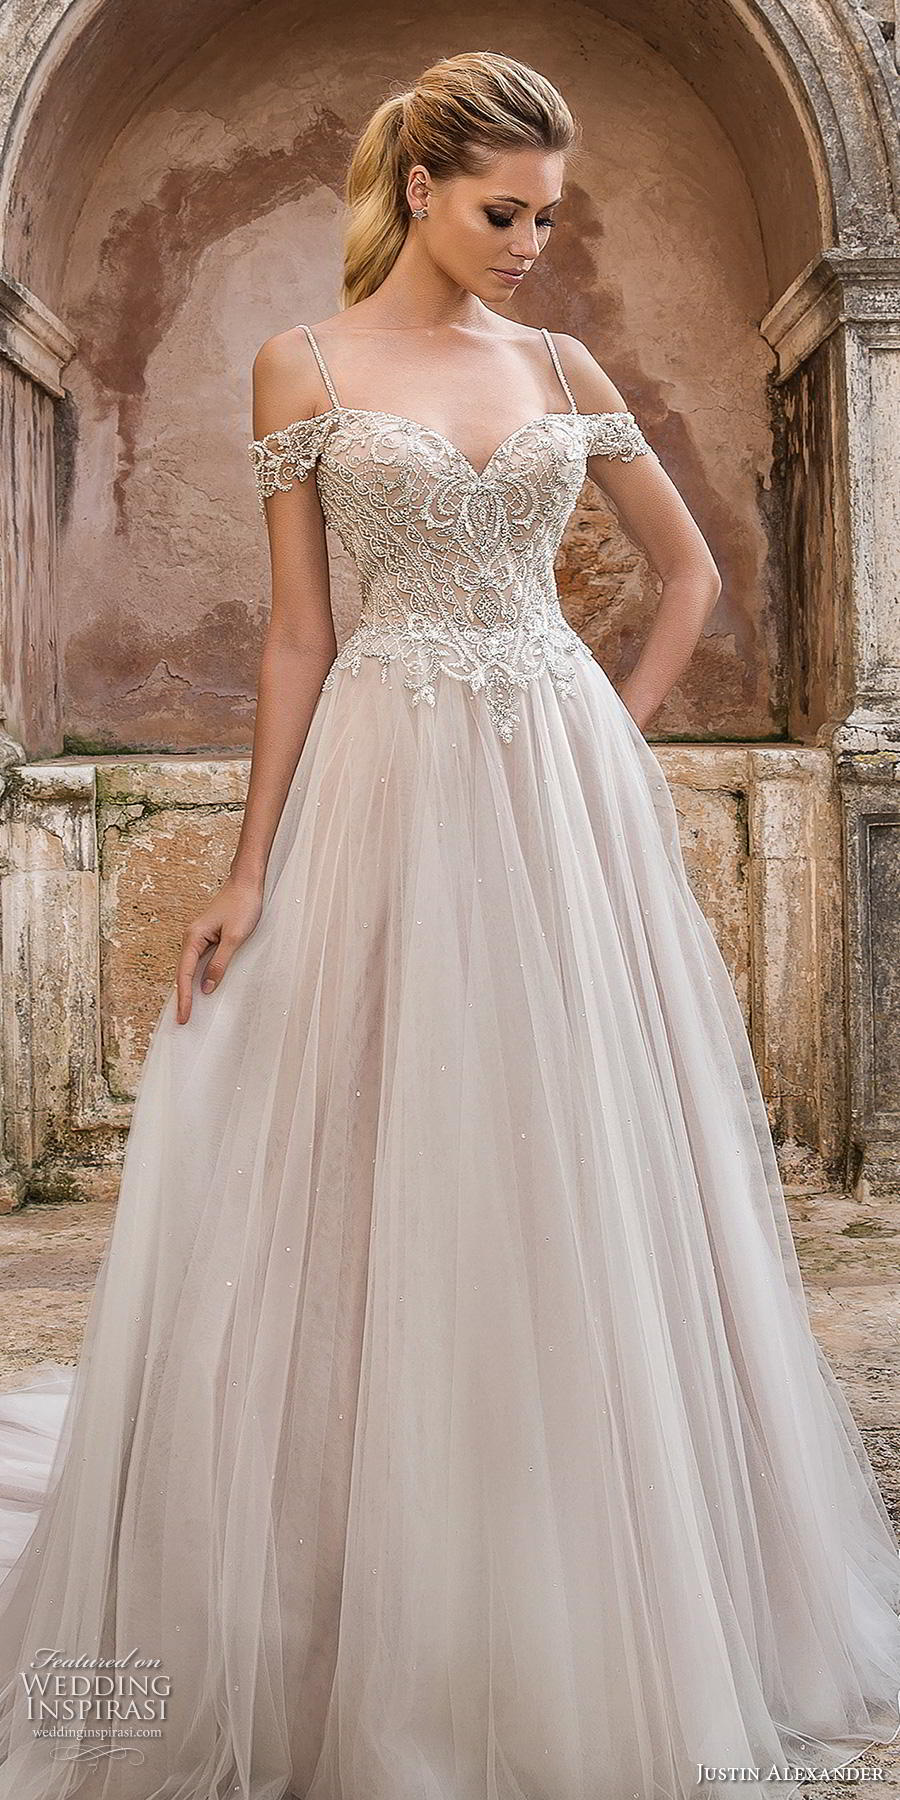 justin alexander spring 2019 bridal cold shoulder spaghetti strap sweetheart neckline heavily embellished bodice tulle skirt romantic a line wedding dress open v back chapel train (2) lv